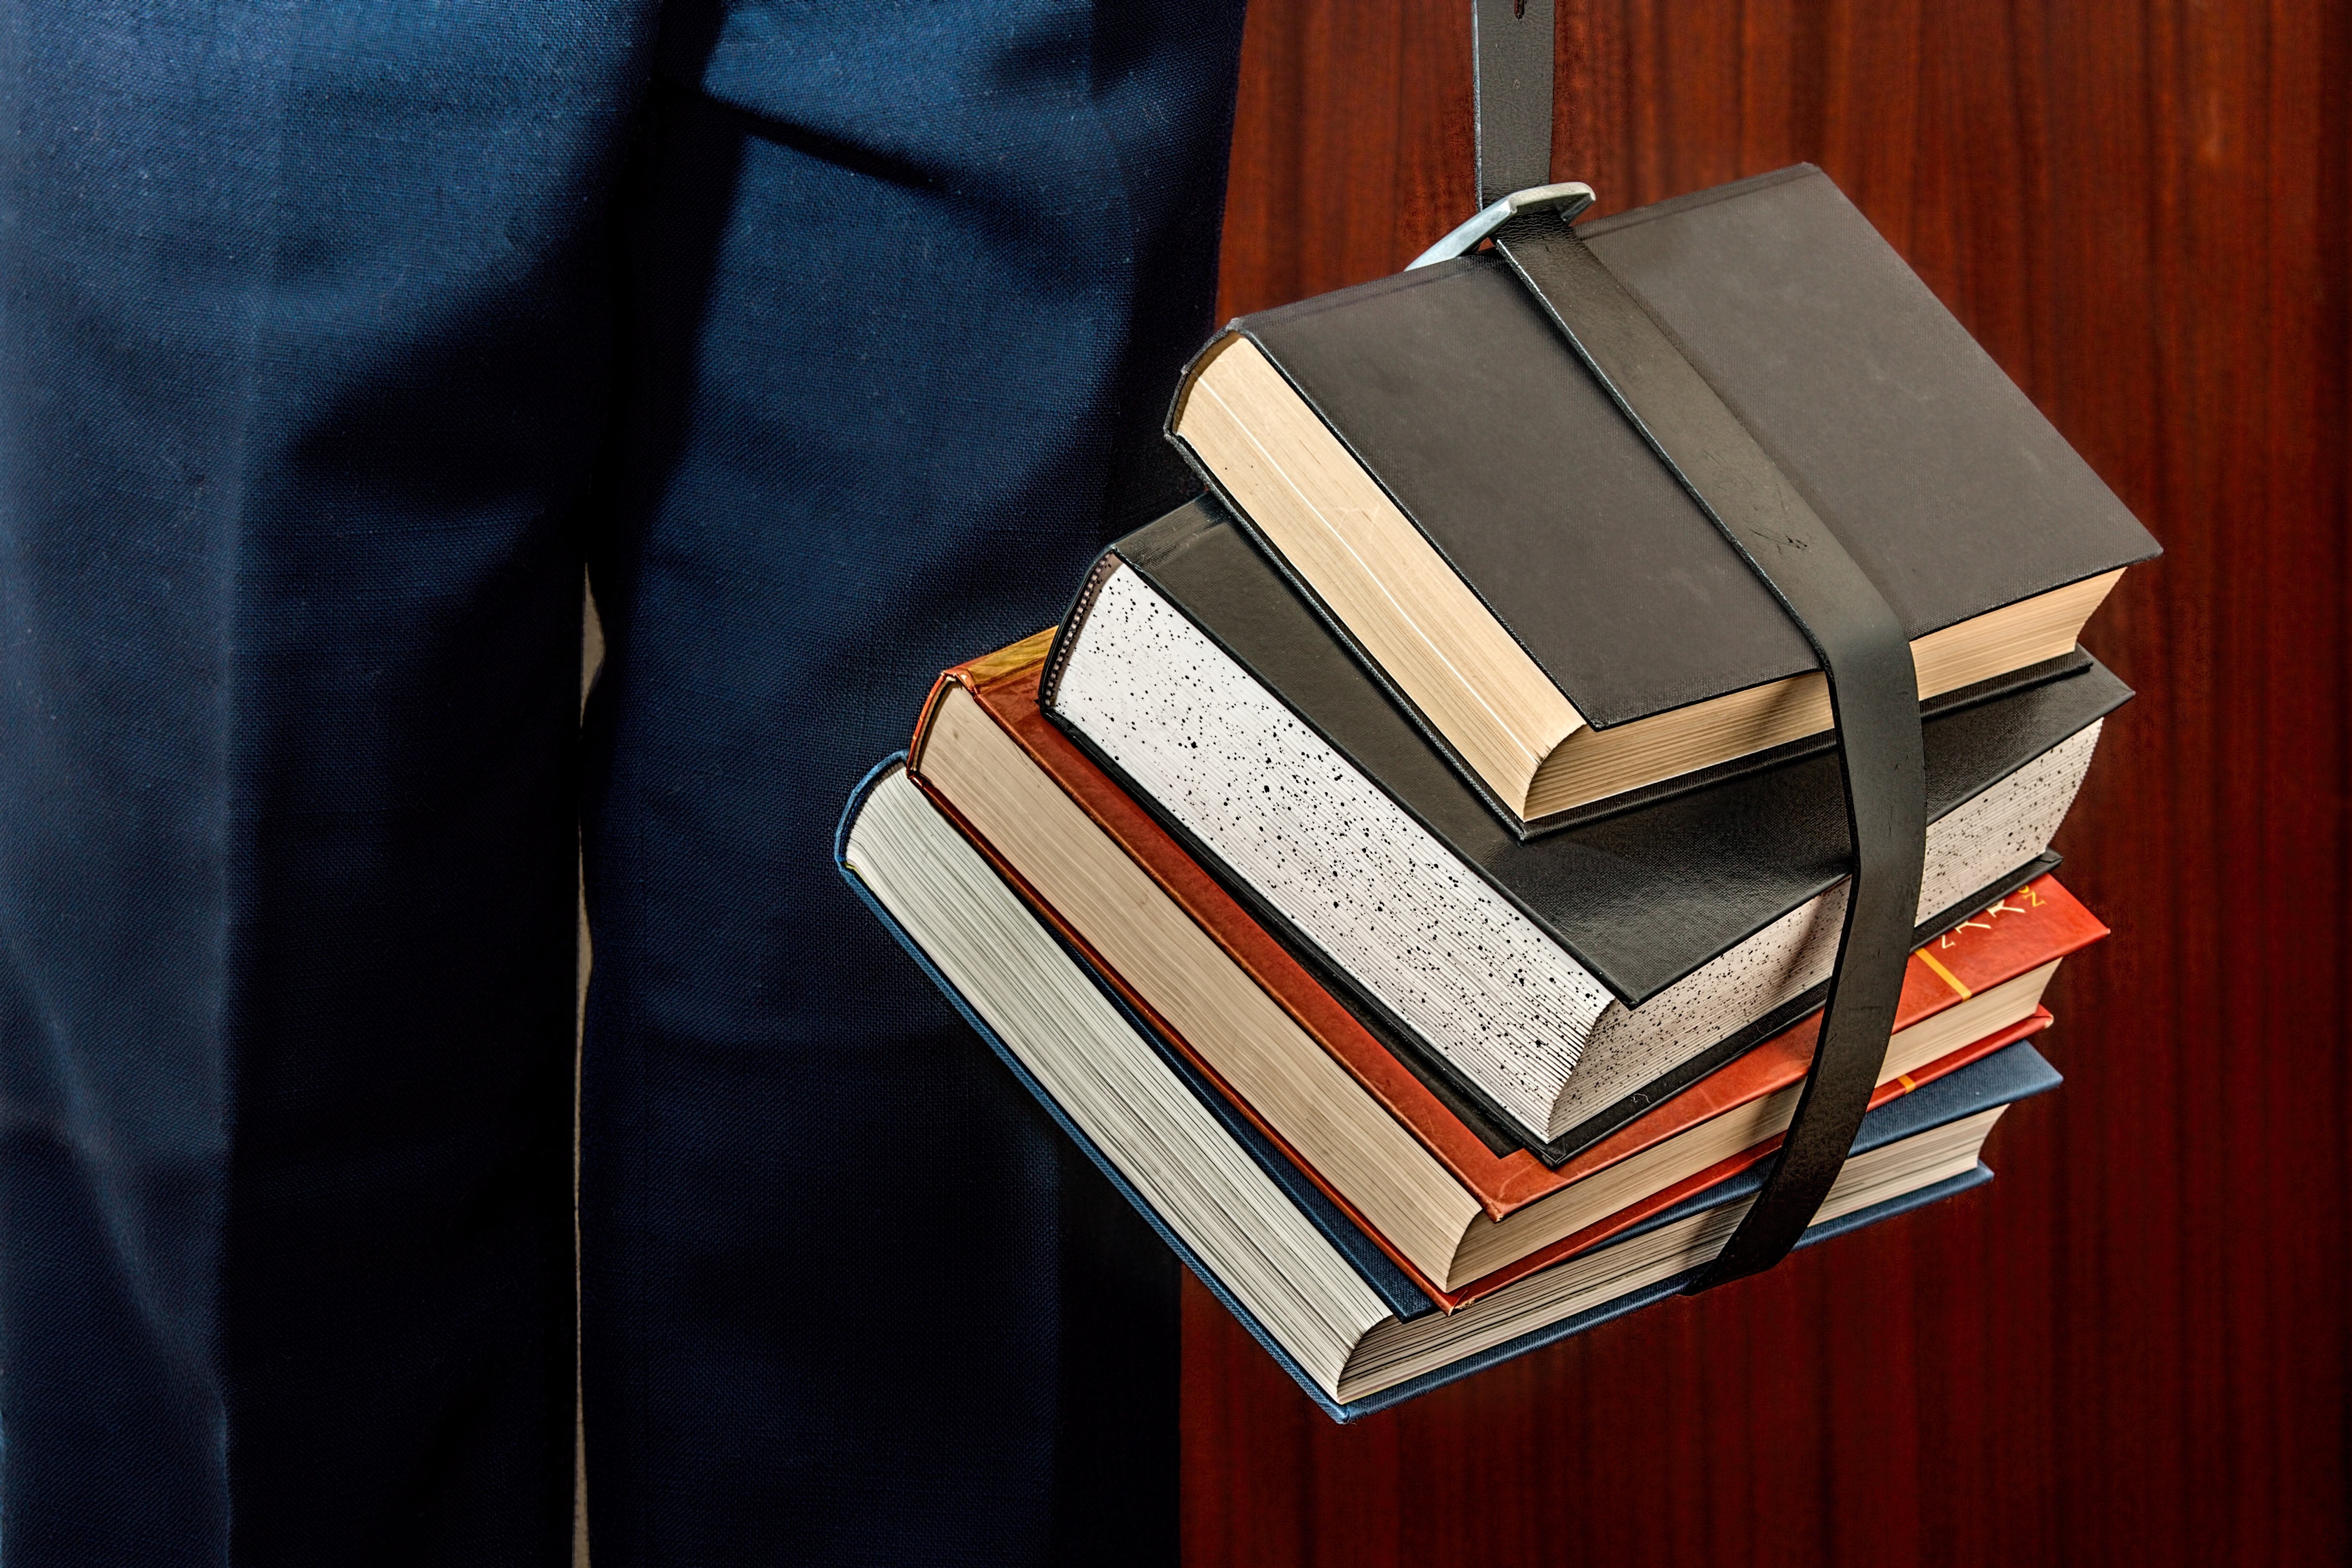 Black leather book strapped around four books photo